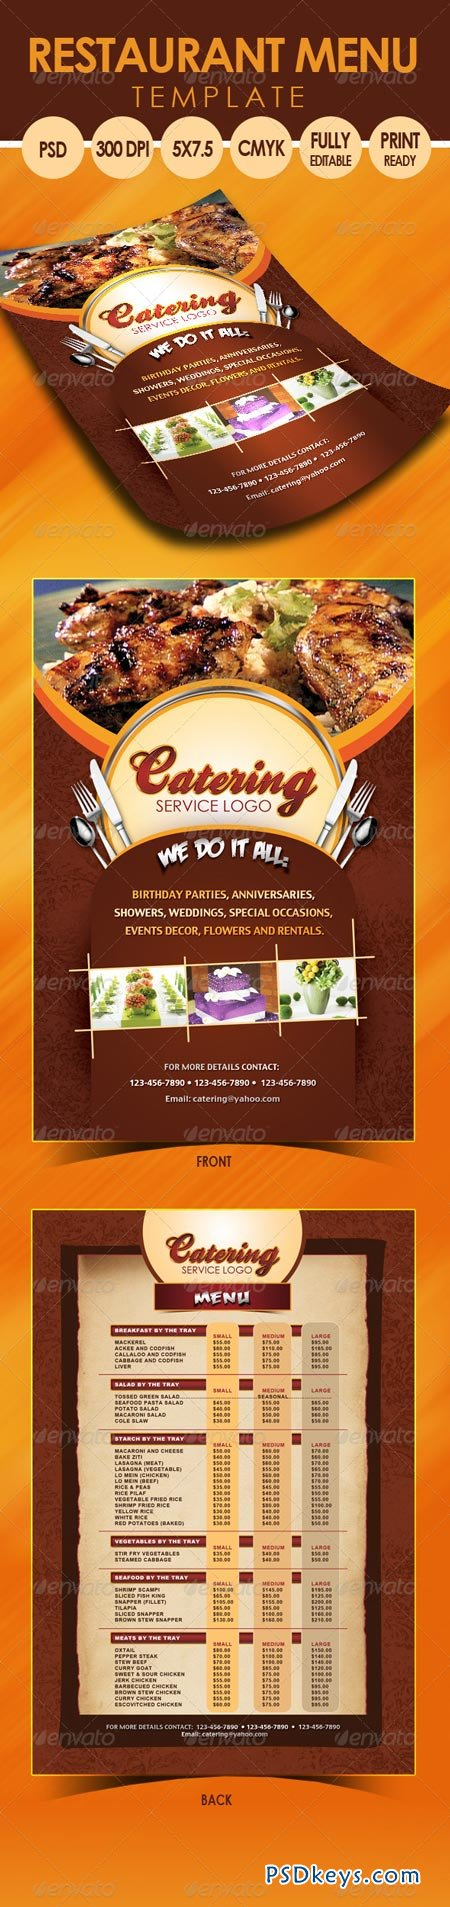 catering menu template flyer photoshop catering menu template flyer 3318145